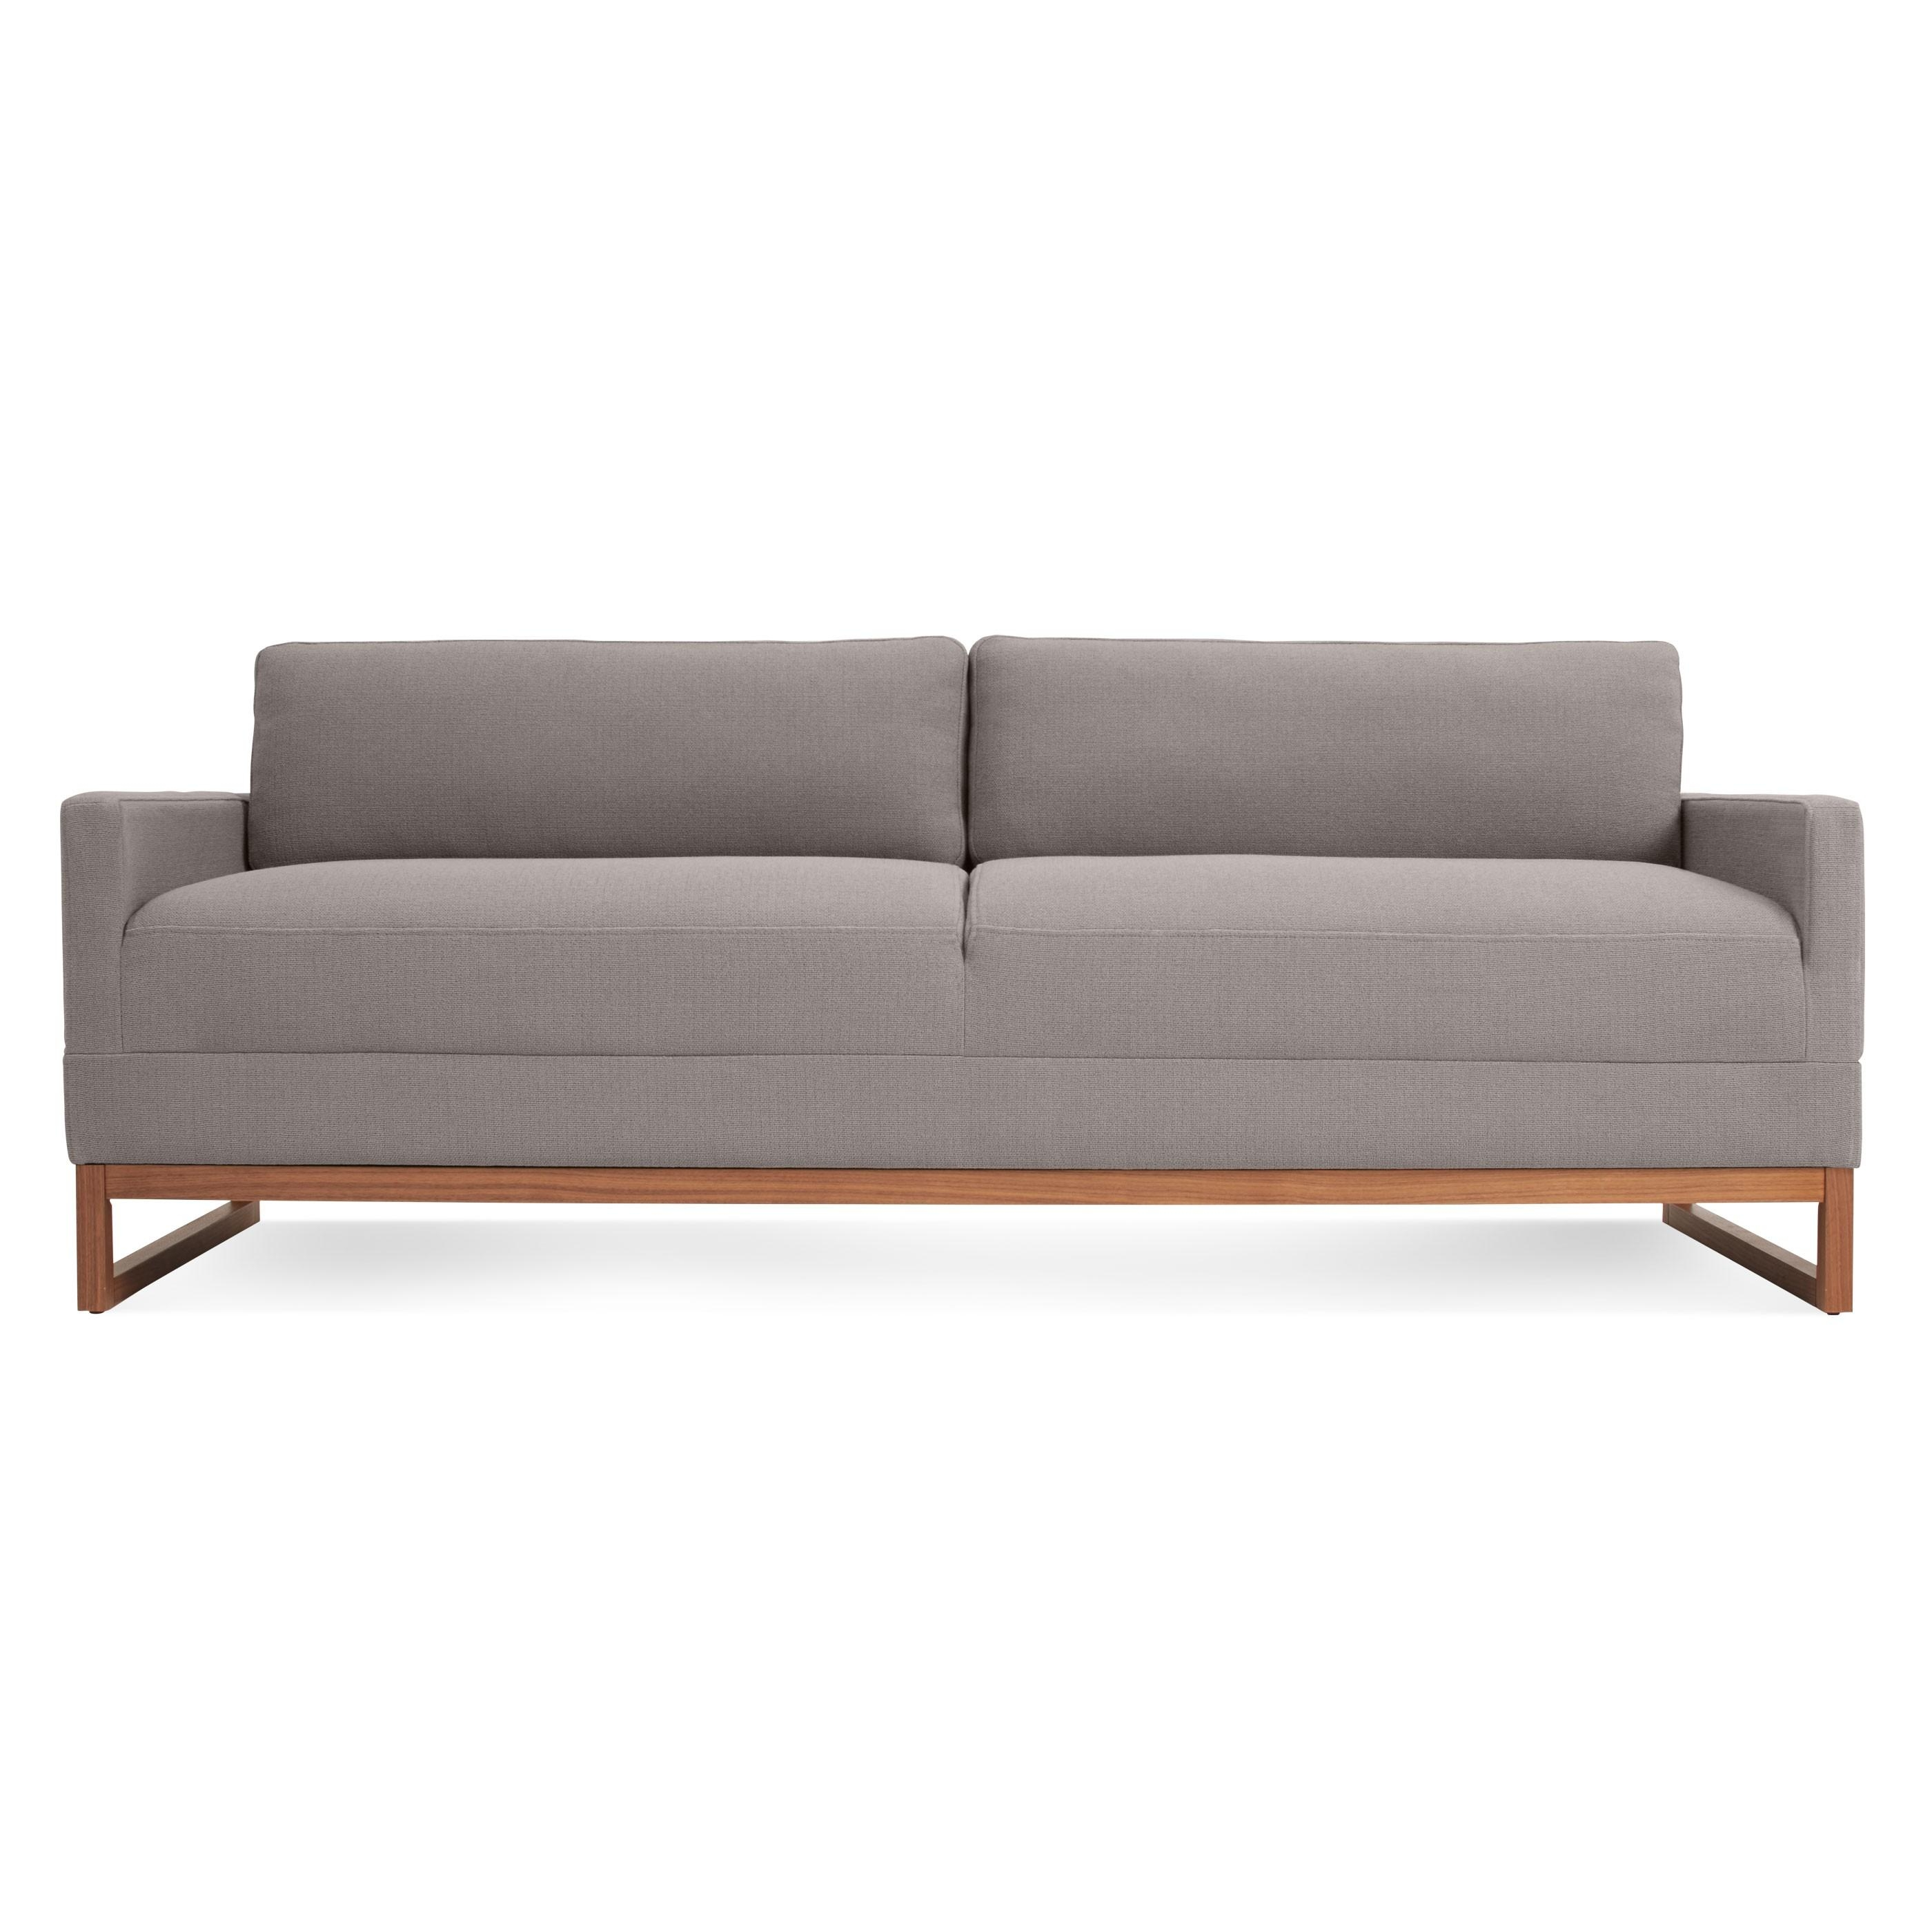 Furniture: Comfortable Tempurpedic Sleeper Sofa For Relax Your Inside King Size Sleeper Sofa Sectional (View 6 of 20)